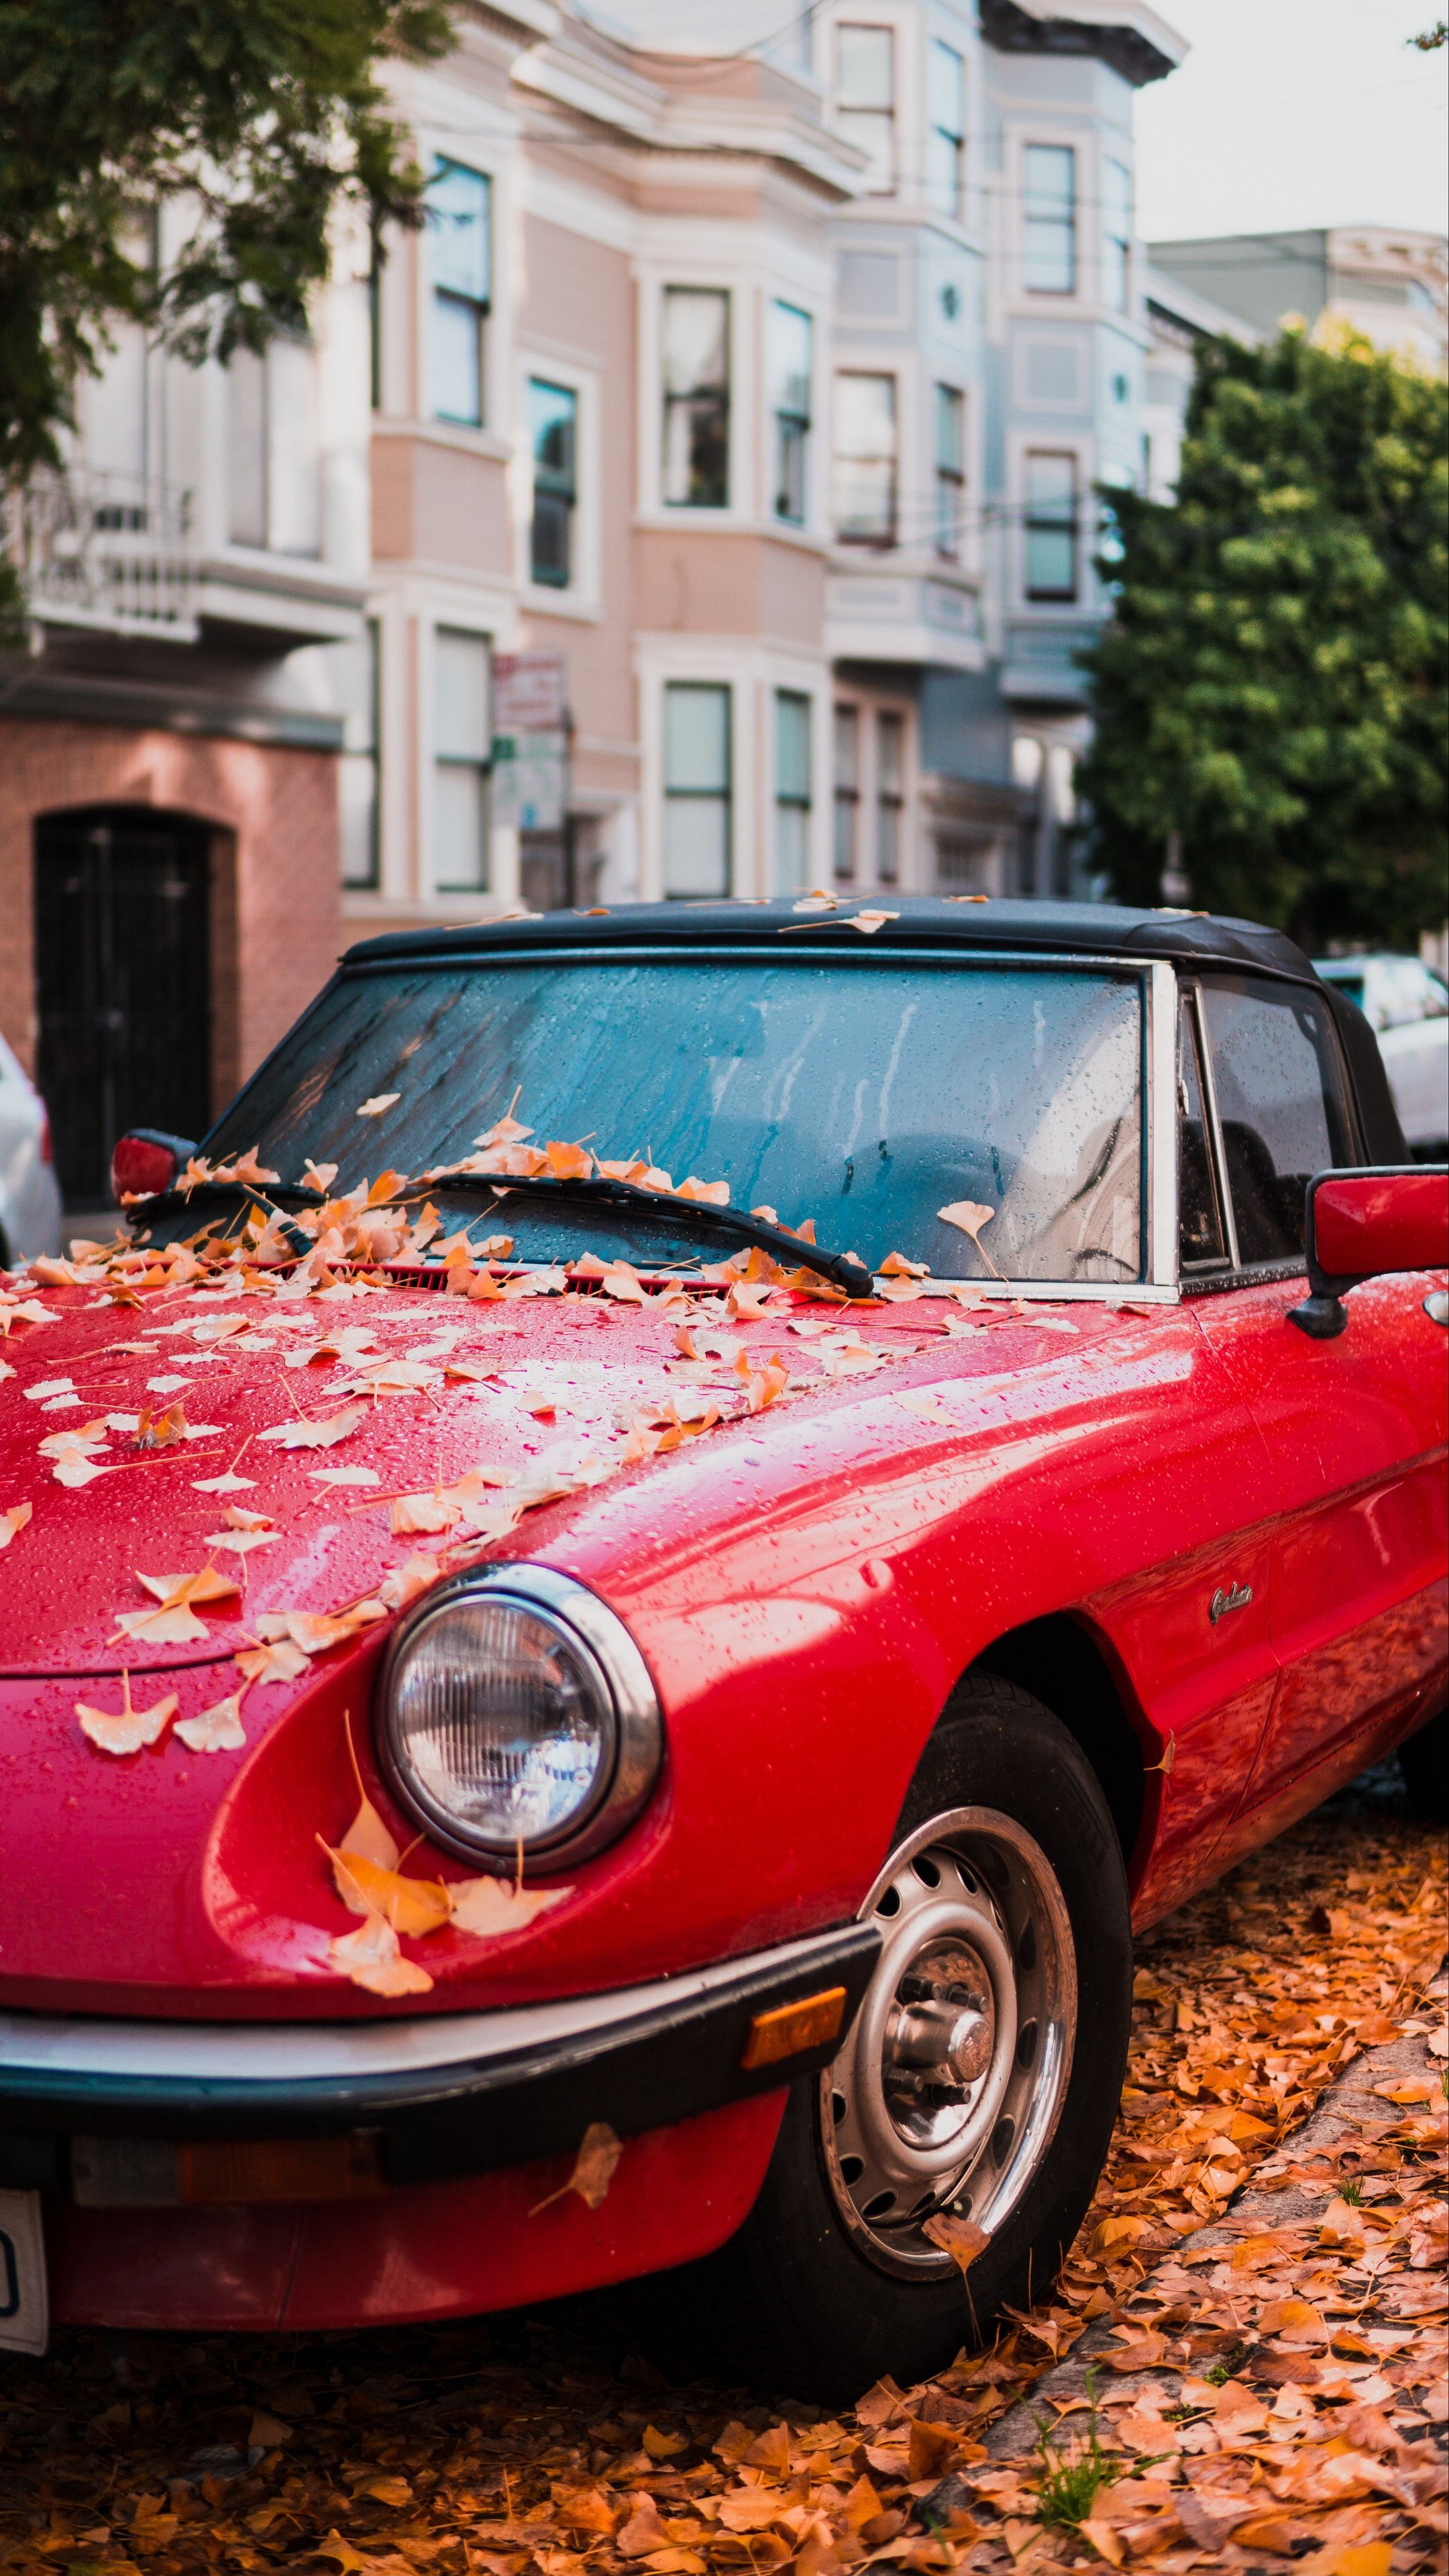 Cars Auto Red Sideview Wallpapers Hd 4k Background For Android